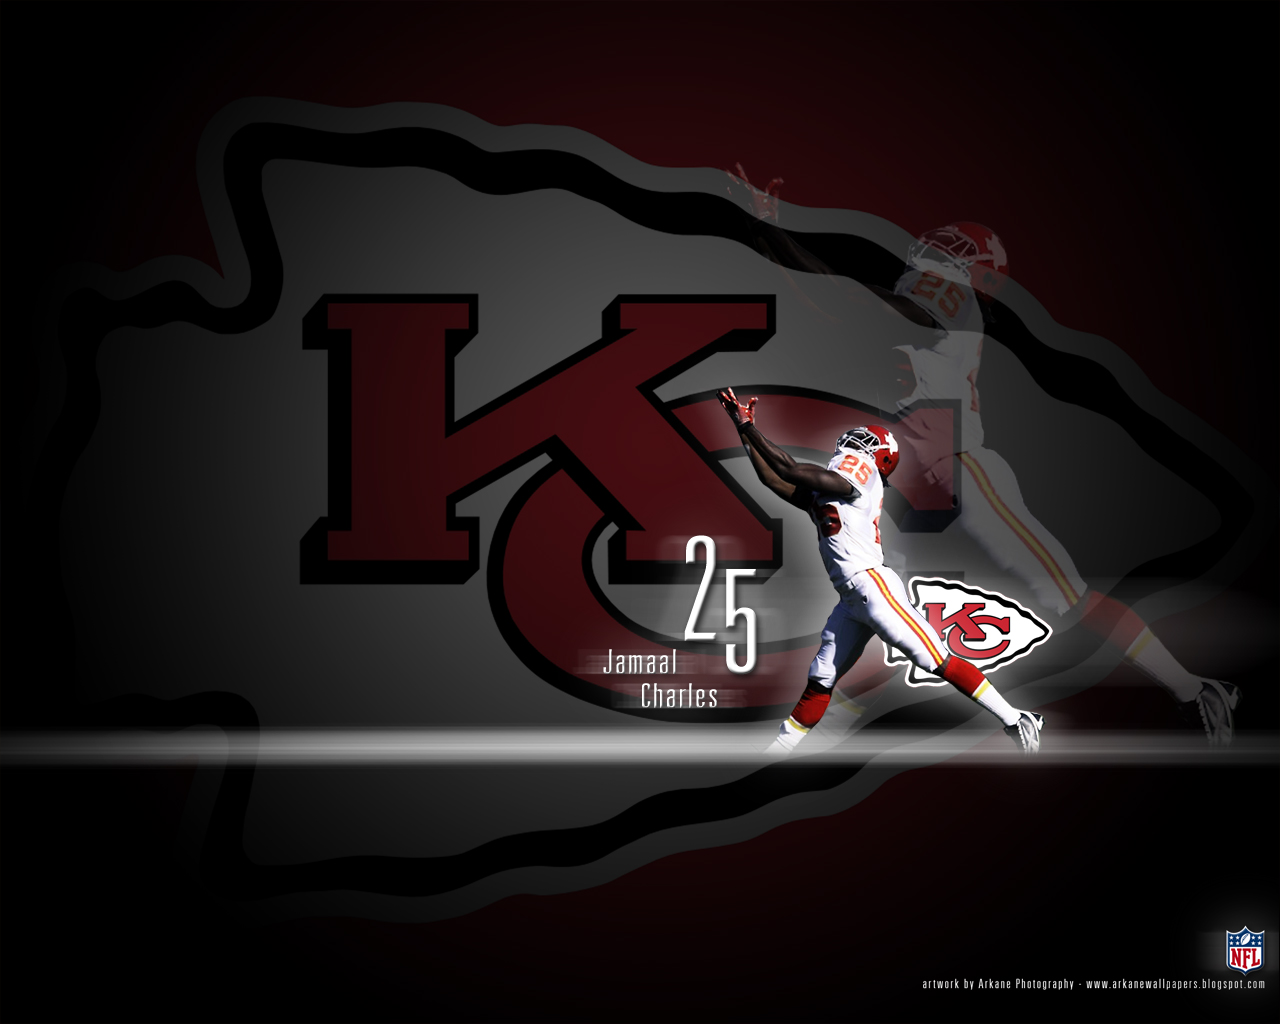 arkane nfl wallpapers jamaal charles kansas city chiefs